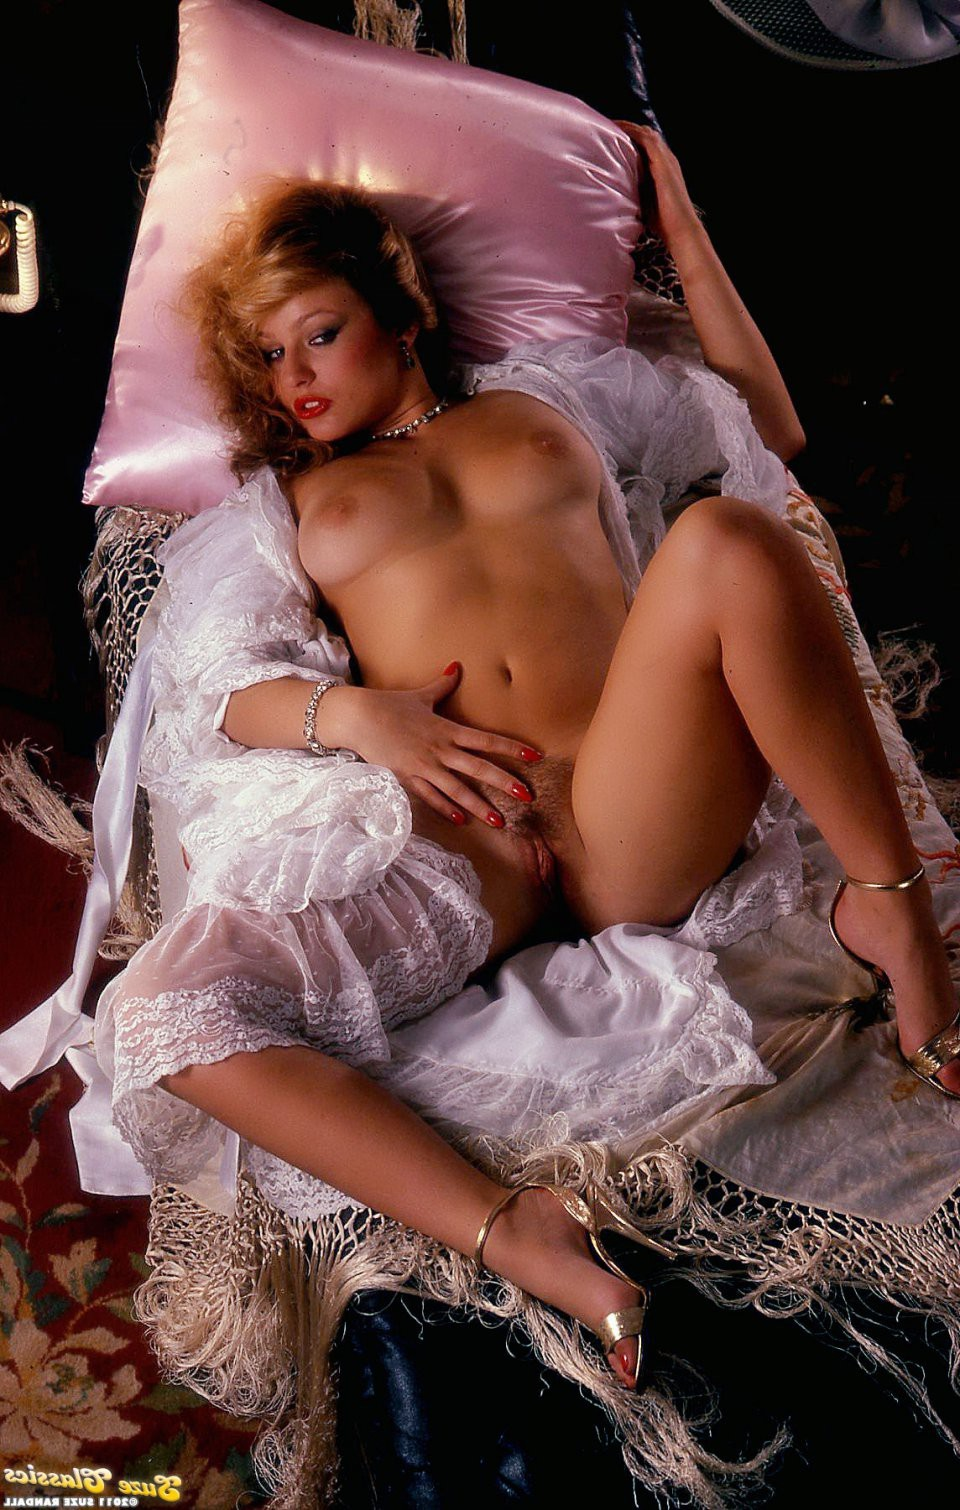 aubrey o day playboy naked pictures – Femdom